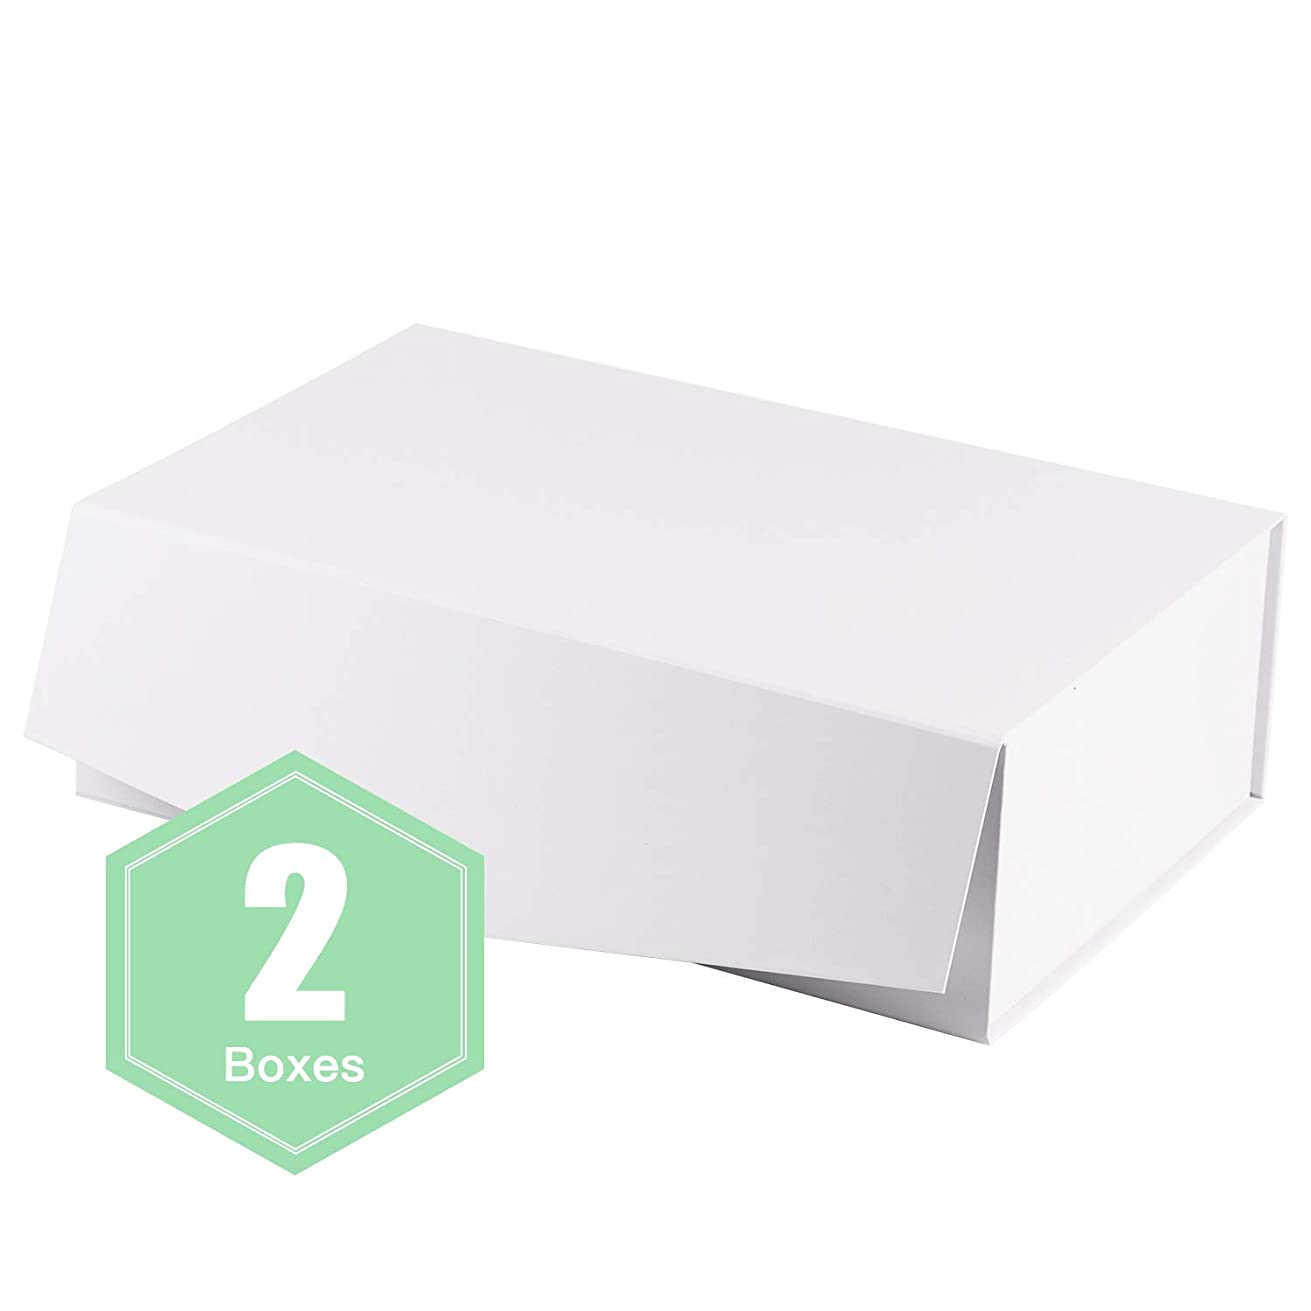 WRAPAHOLIC 2Pcs White Gift Box Rectangular 13.8x9x4.3 Inches, Collapsible Gift Box with Magnetic Closure for Party, Wedding, Gift Wrap, Bridesmaid Proposal, Storage